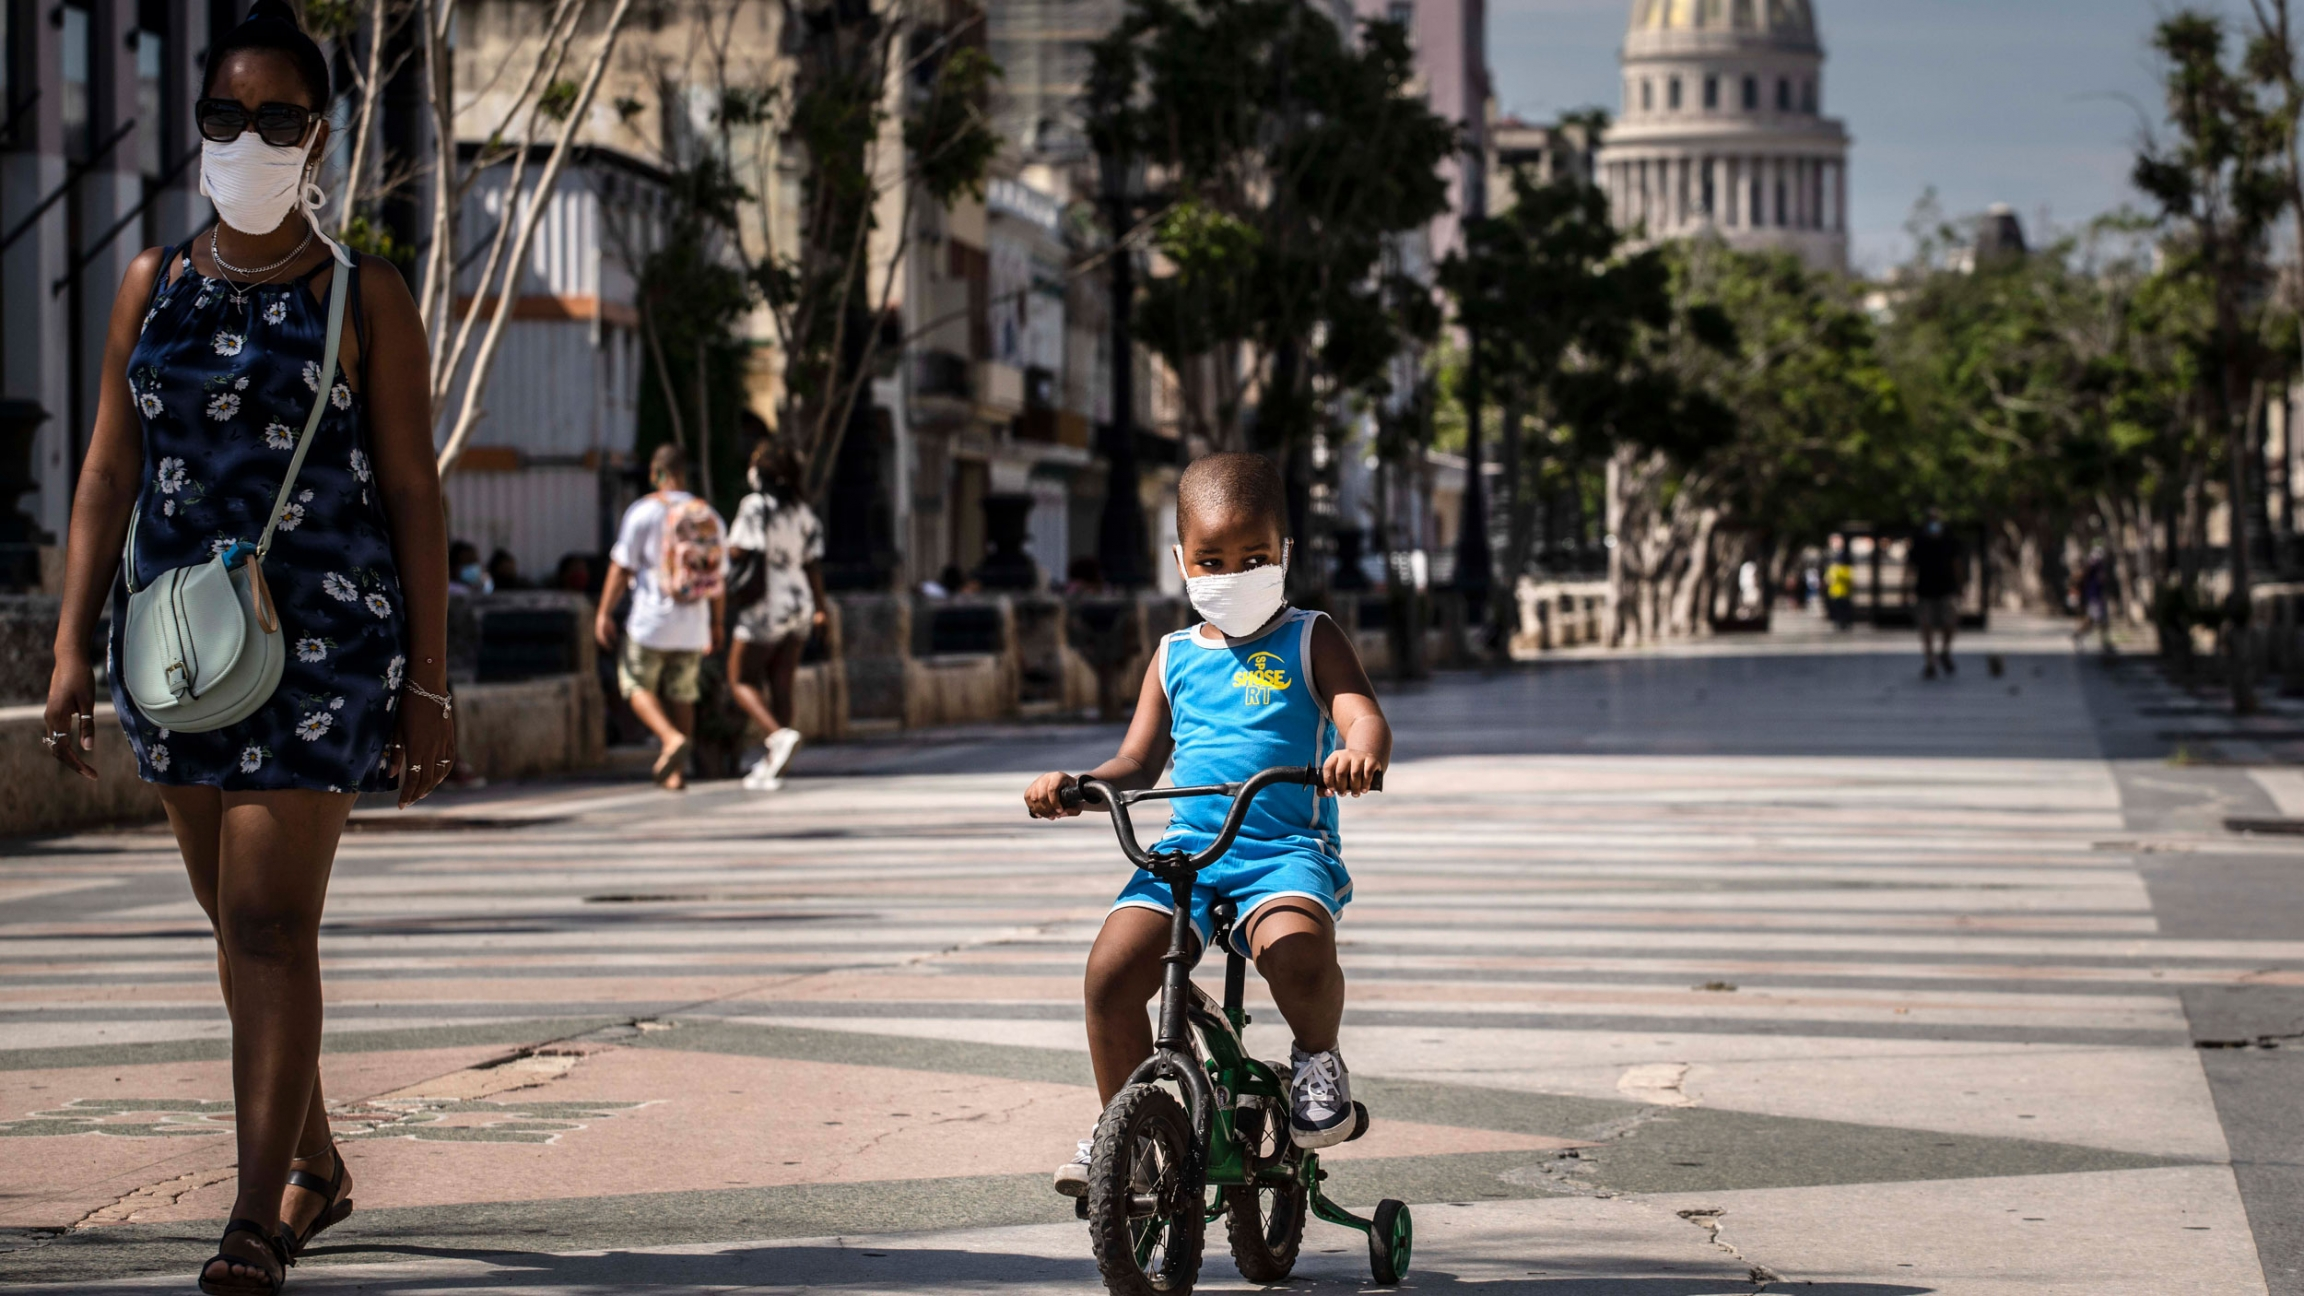 A young child is shown wearing a face mask and a blue outfit and riding a small bicycle with training wheels.